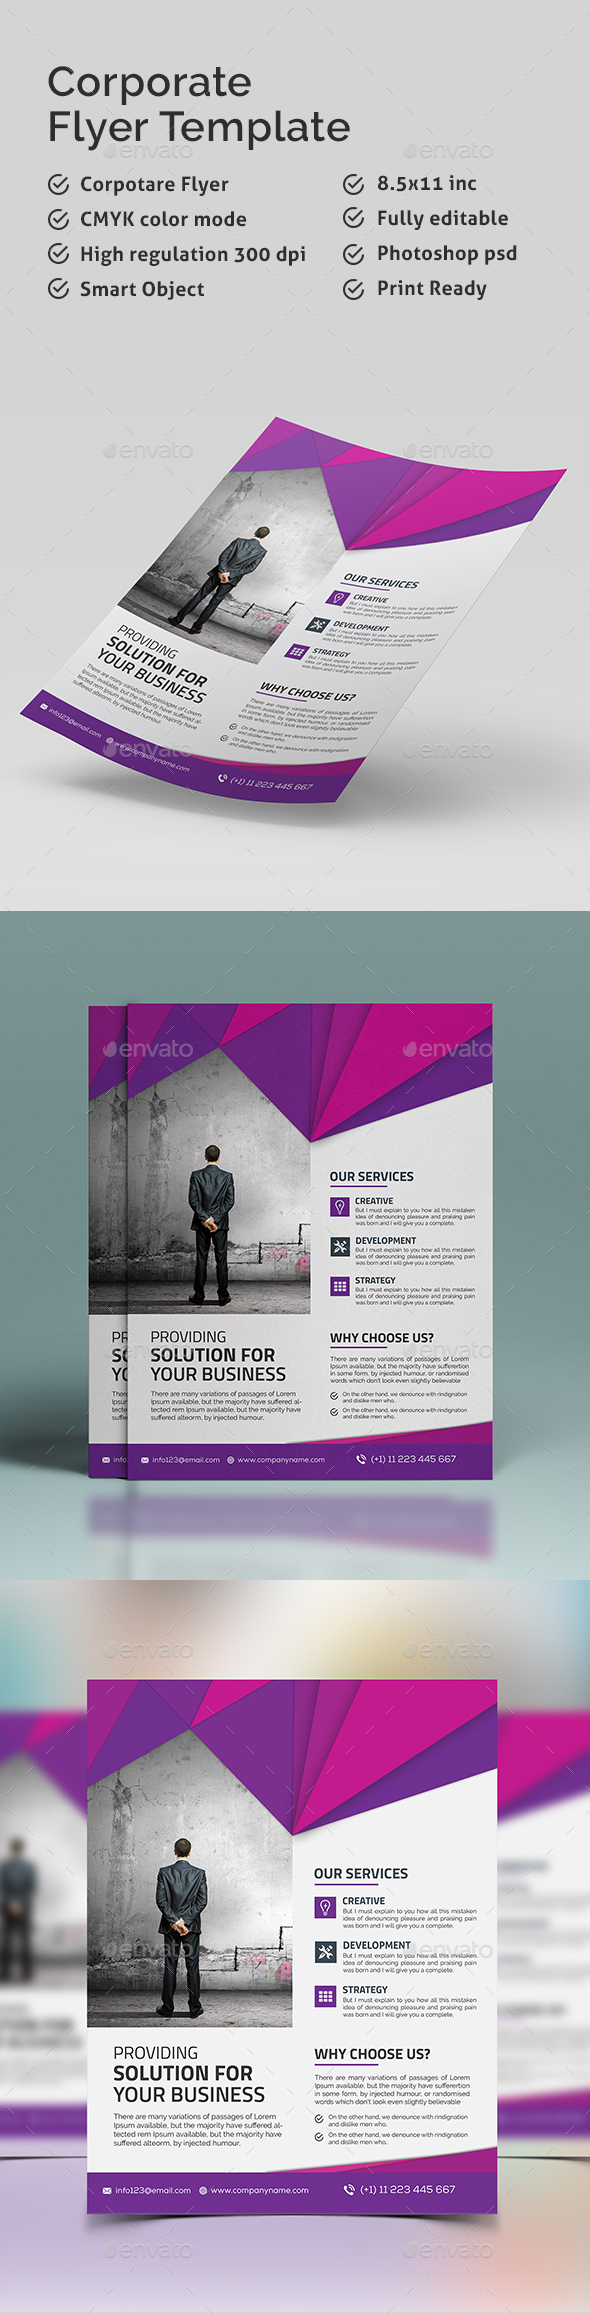 Colorful Corporate Flyer - Corporate Flyers